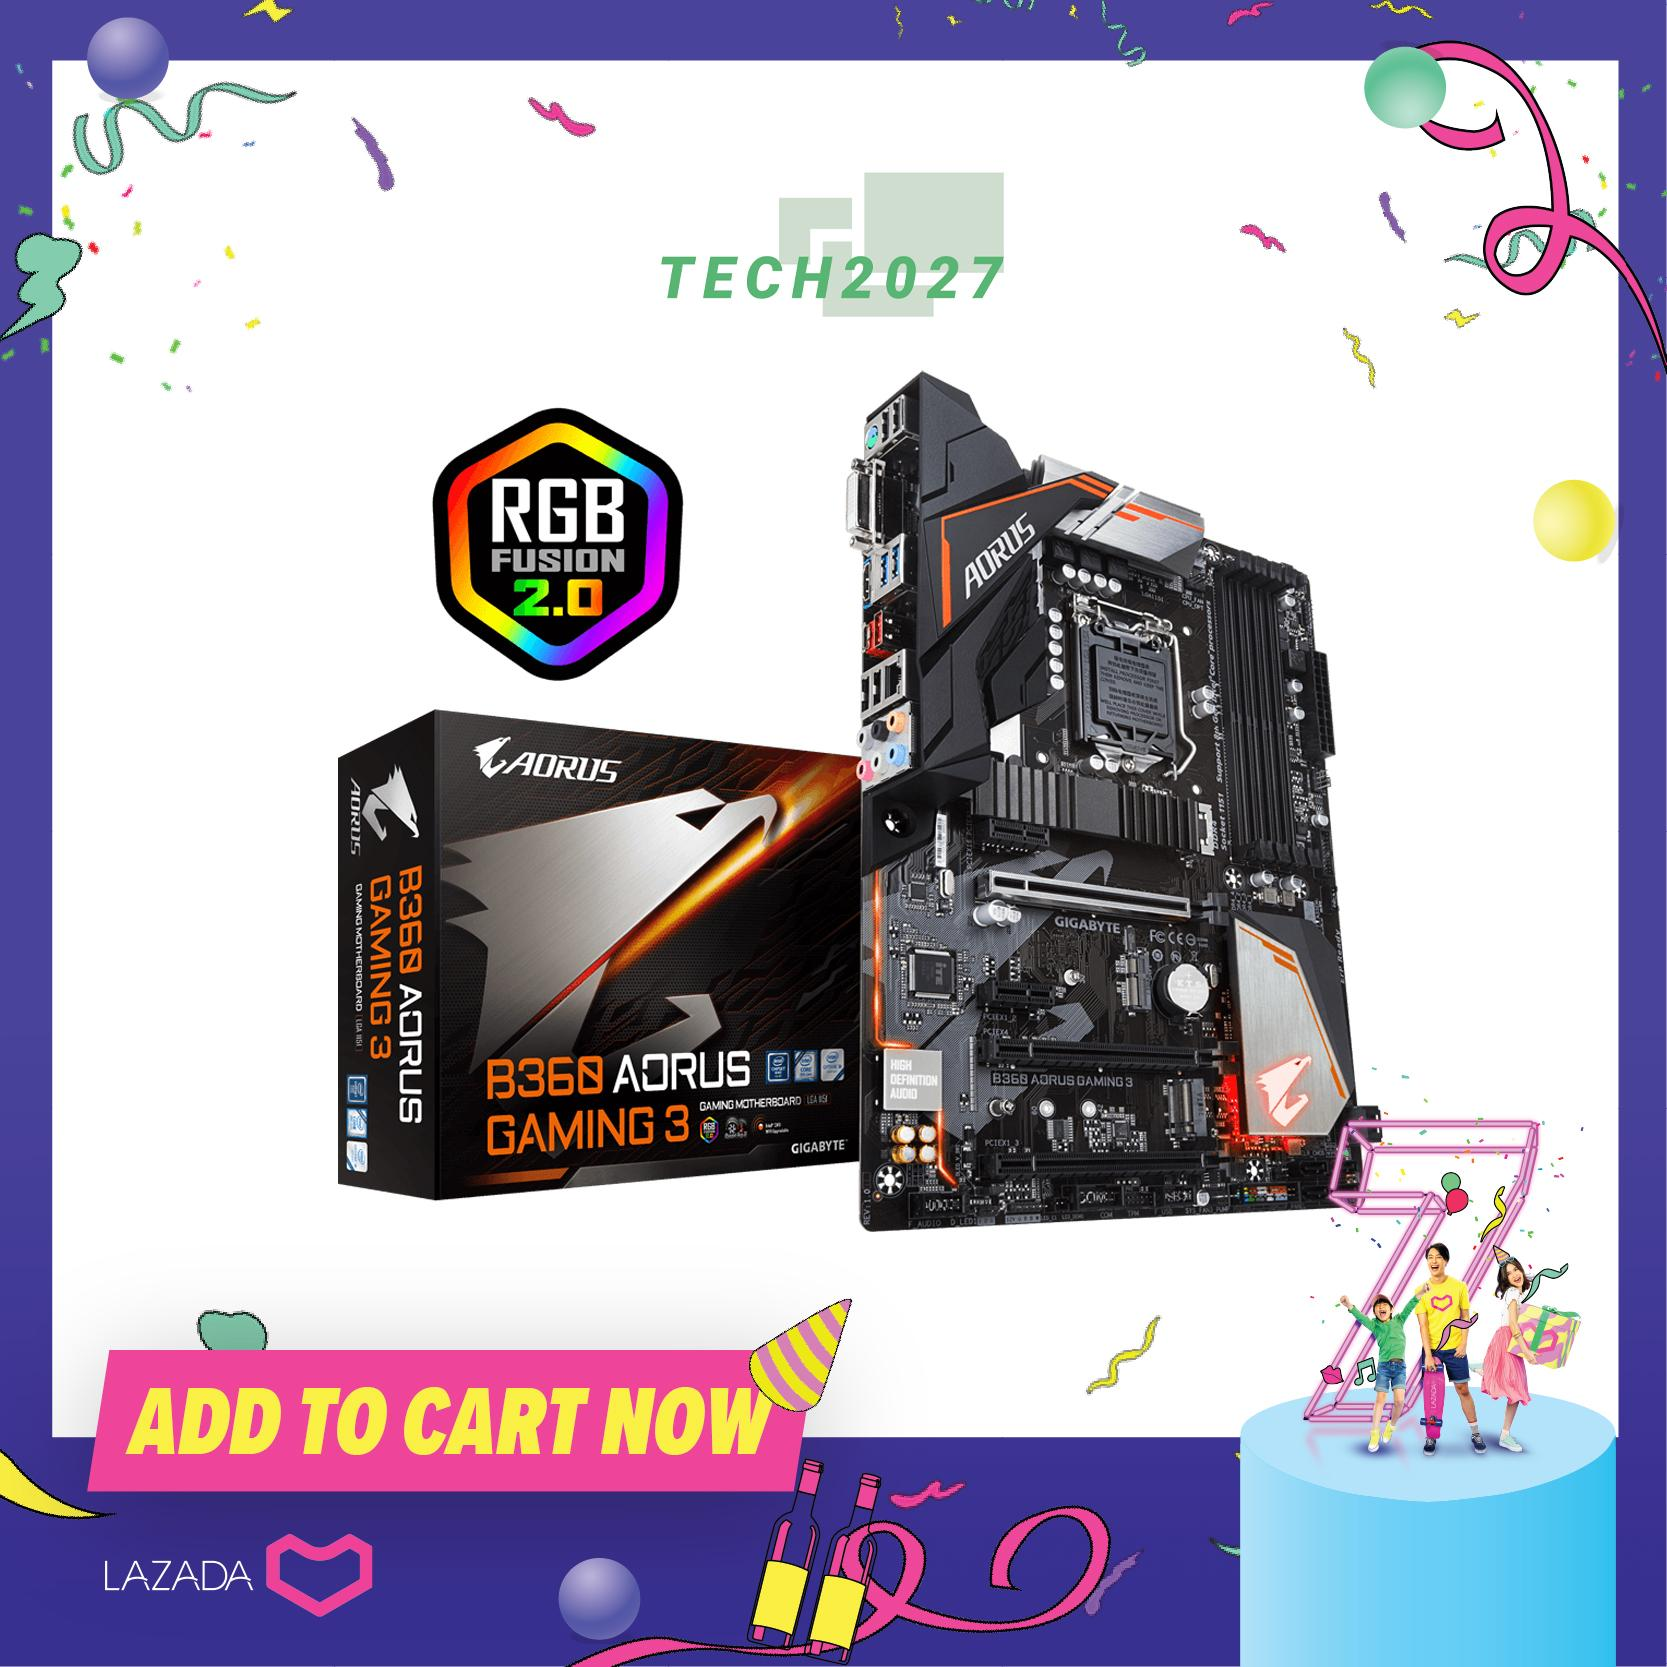 Gigabyte B360 Aorus Gaming 3 Lga 1151 (socket H4) Atx Motherboard By Tech2027